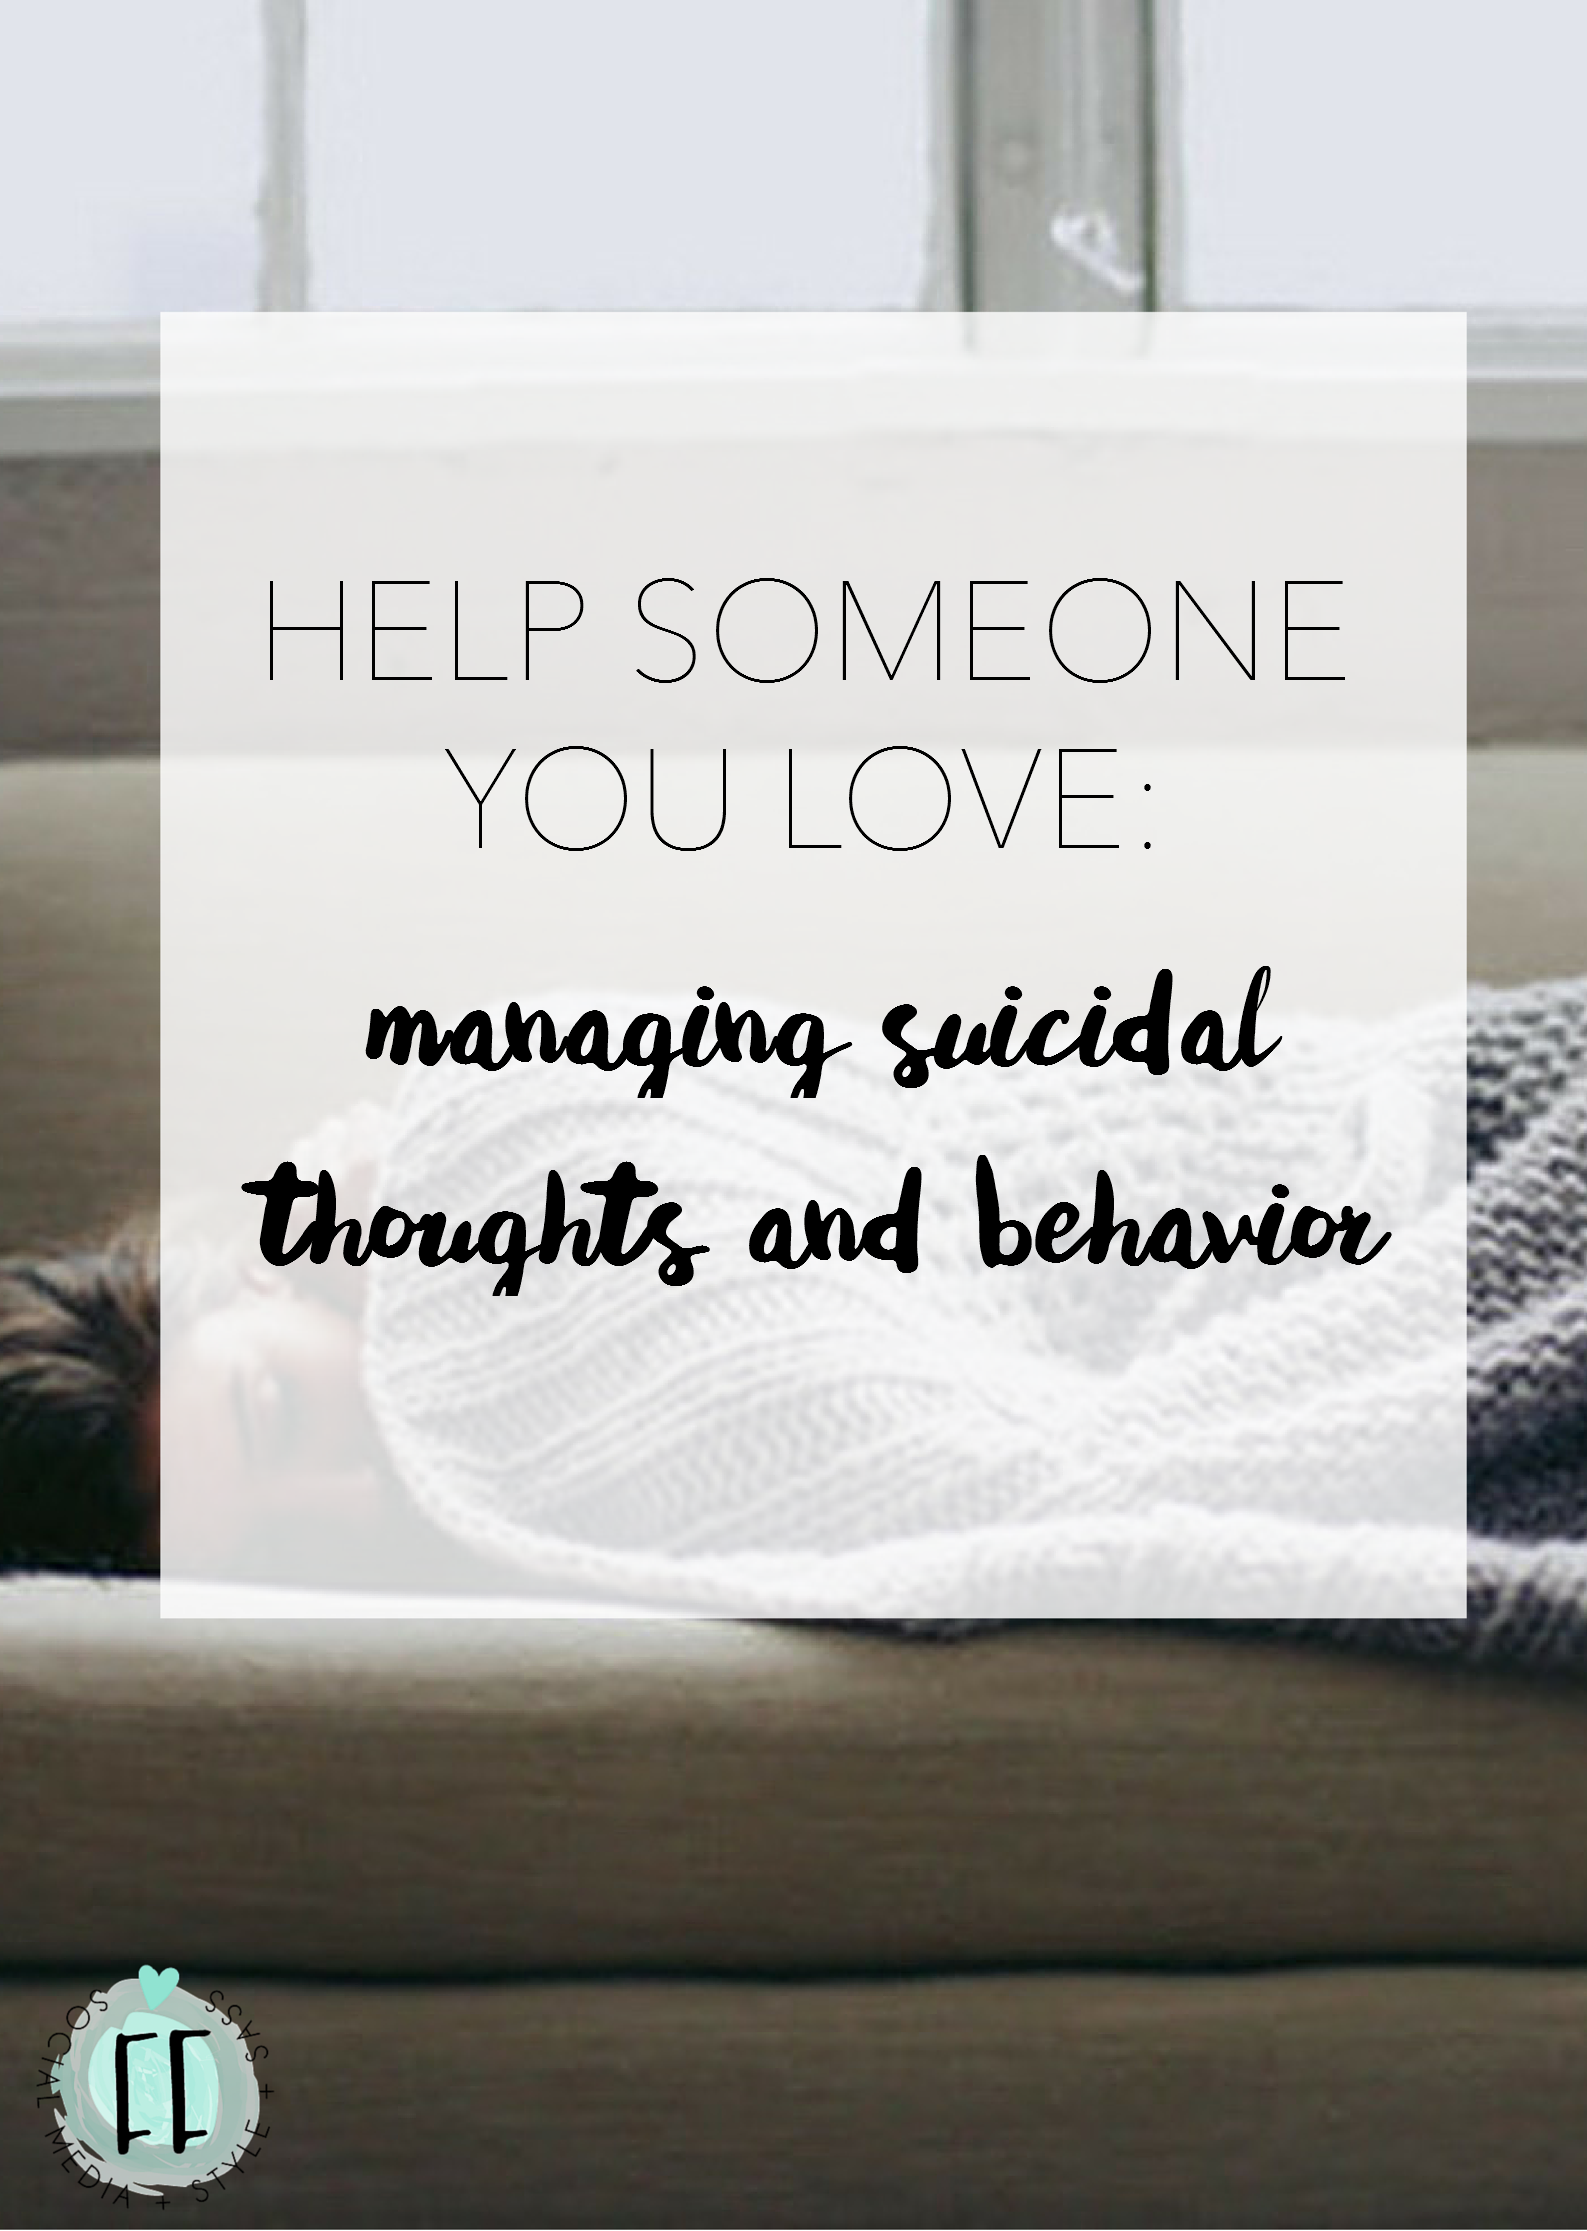 managing suicidal thoughts and behavior: how to help someone you